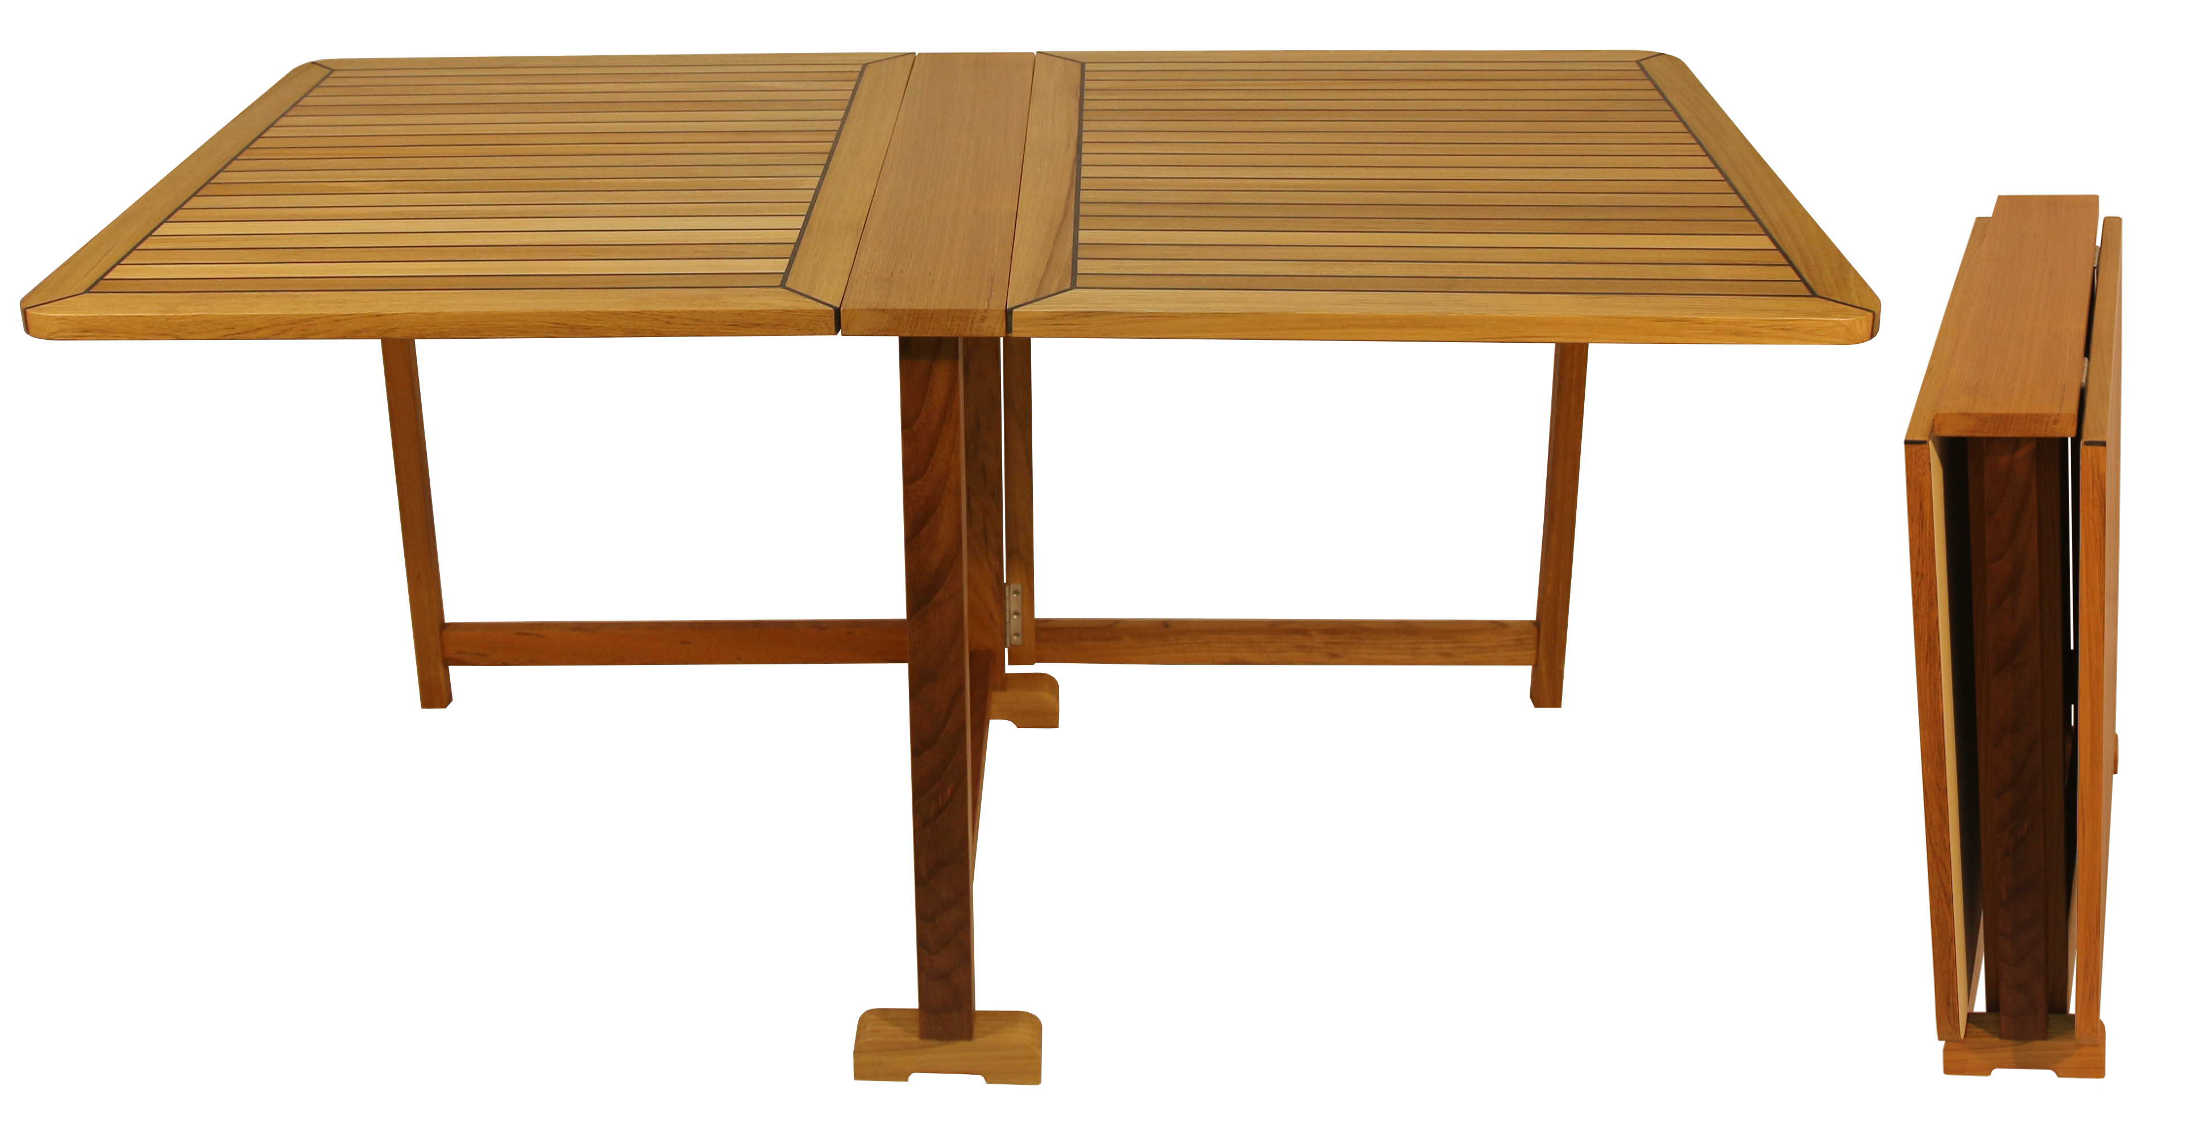 Folding Butterfly Table EUDE Nautic – Rectangular 75x140